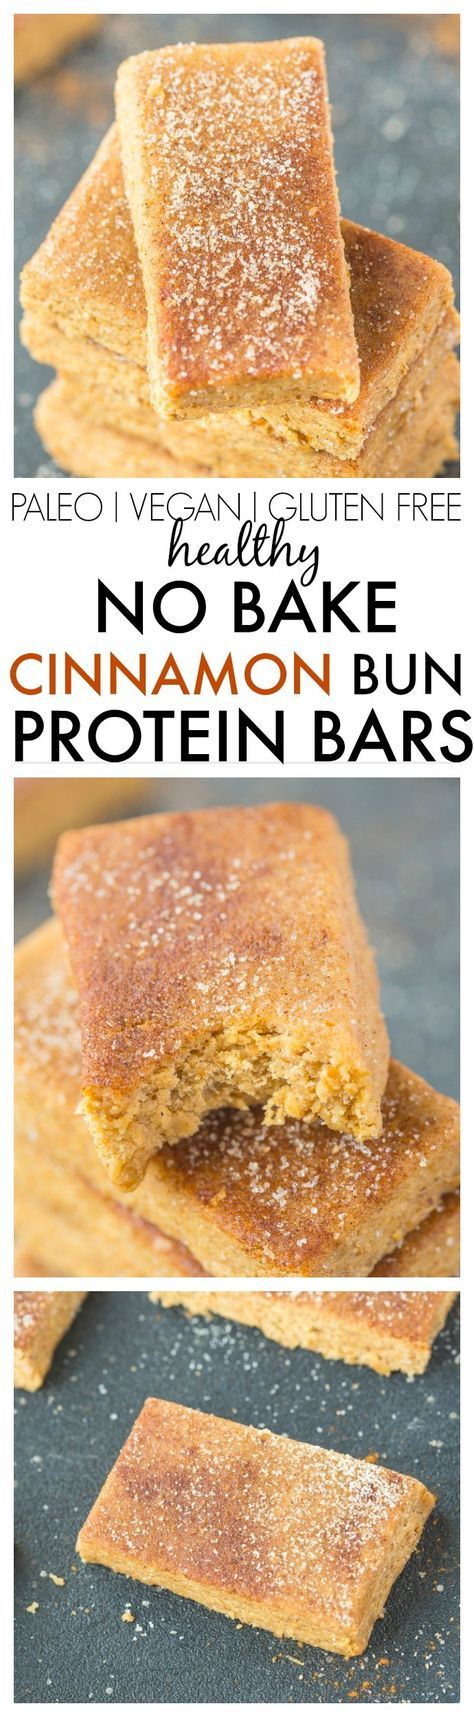 Healthy No Bake Cinnamon Bun Protein Bars-Just 10 minutes and 1 bowl to whip these up- Soft, chewy and no refrigeration needed- They taste like dessert! {vegan, gluten free, sugar free + paleo option!}- thebigmansworld.com